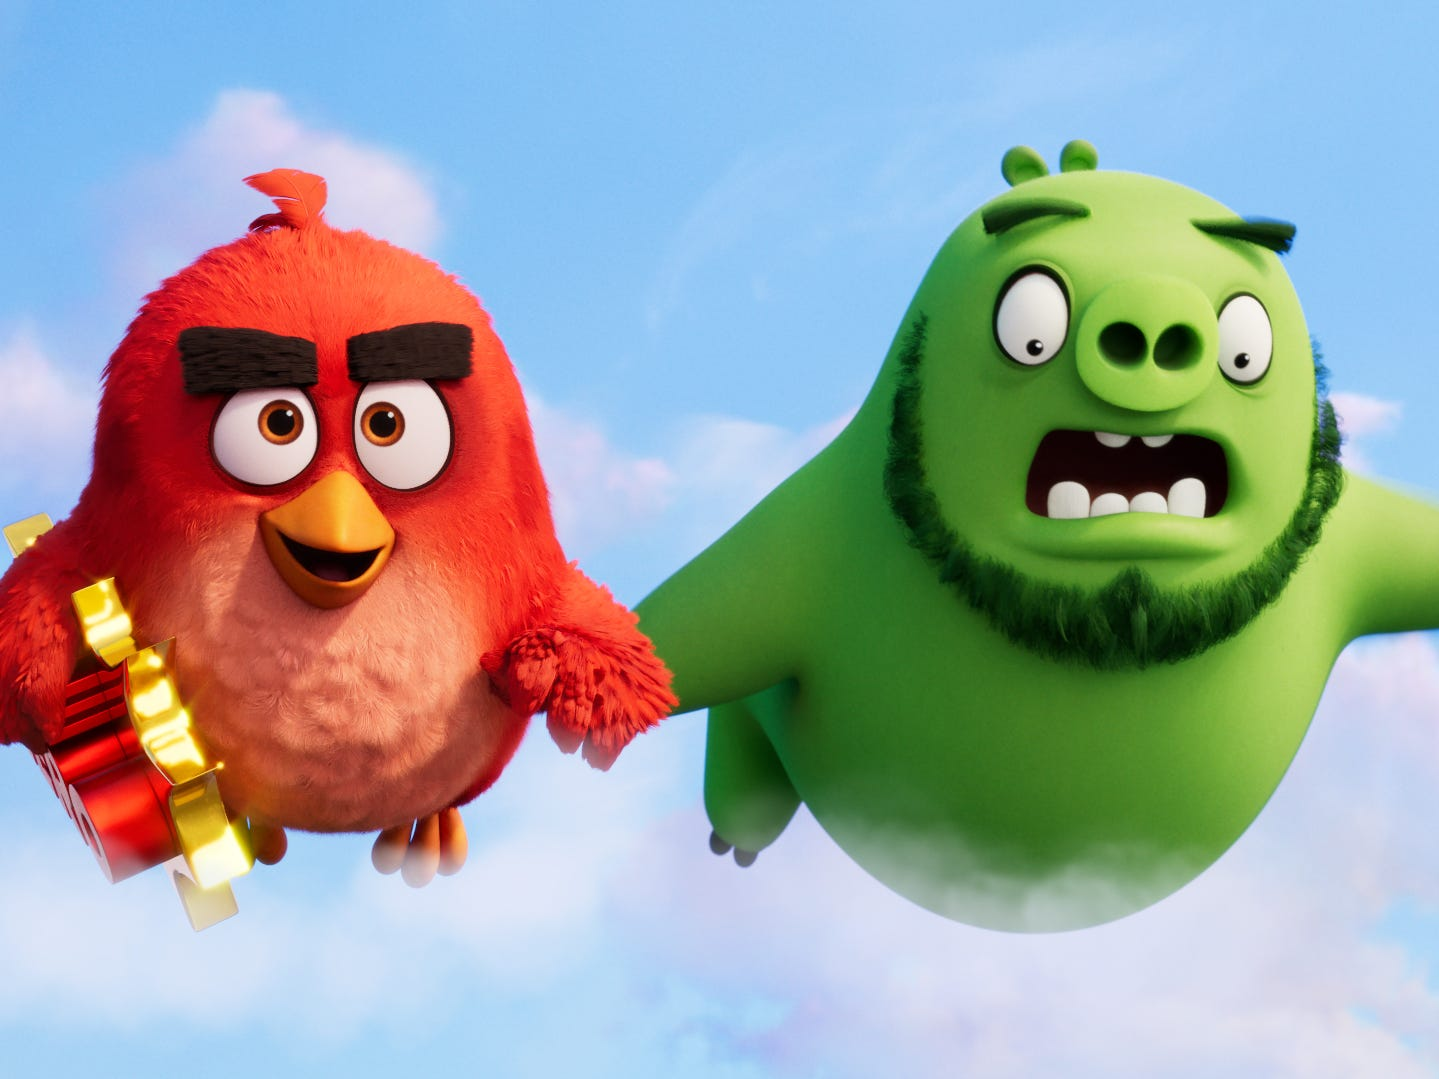 "Red the bird (voiced by Jason Sudeikis, left) and Leonard the pig (Bill Hader) are frenemies who team up against a common threat in the animated sequel ""The Angry Birds Movie 2."" (Aug. 14)"